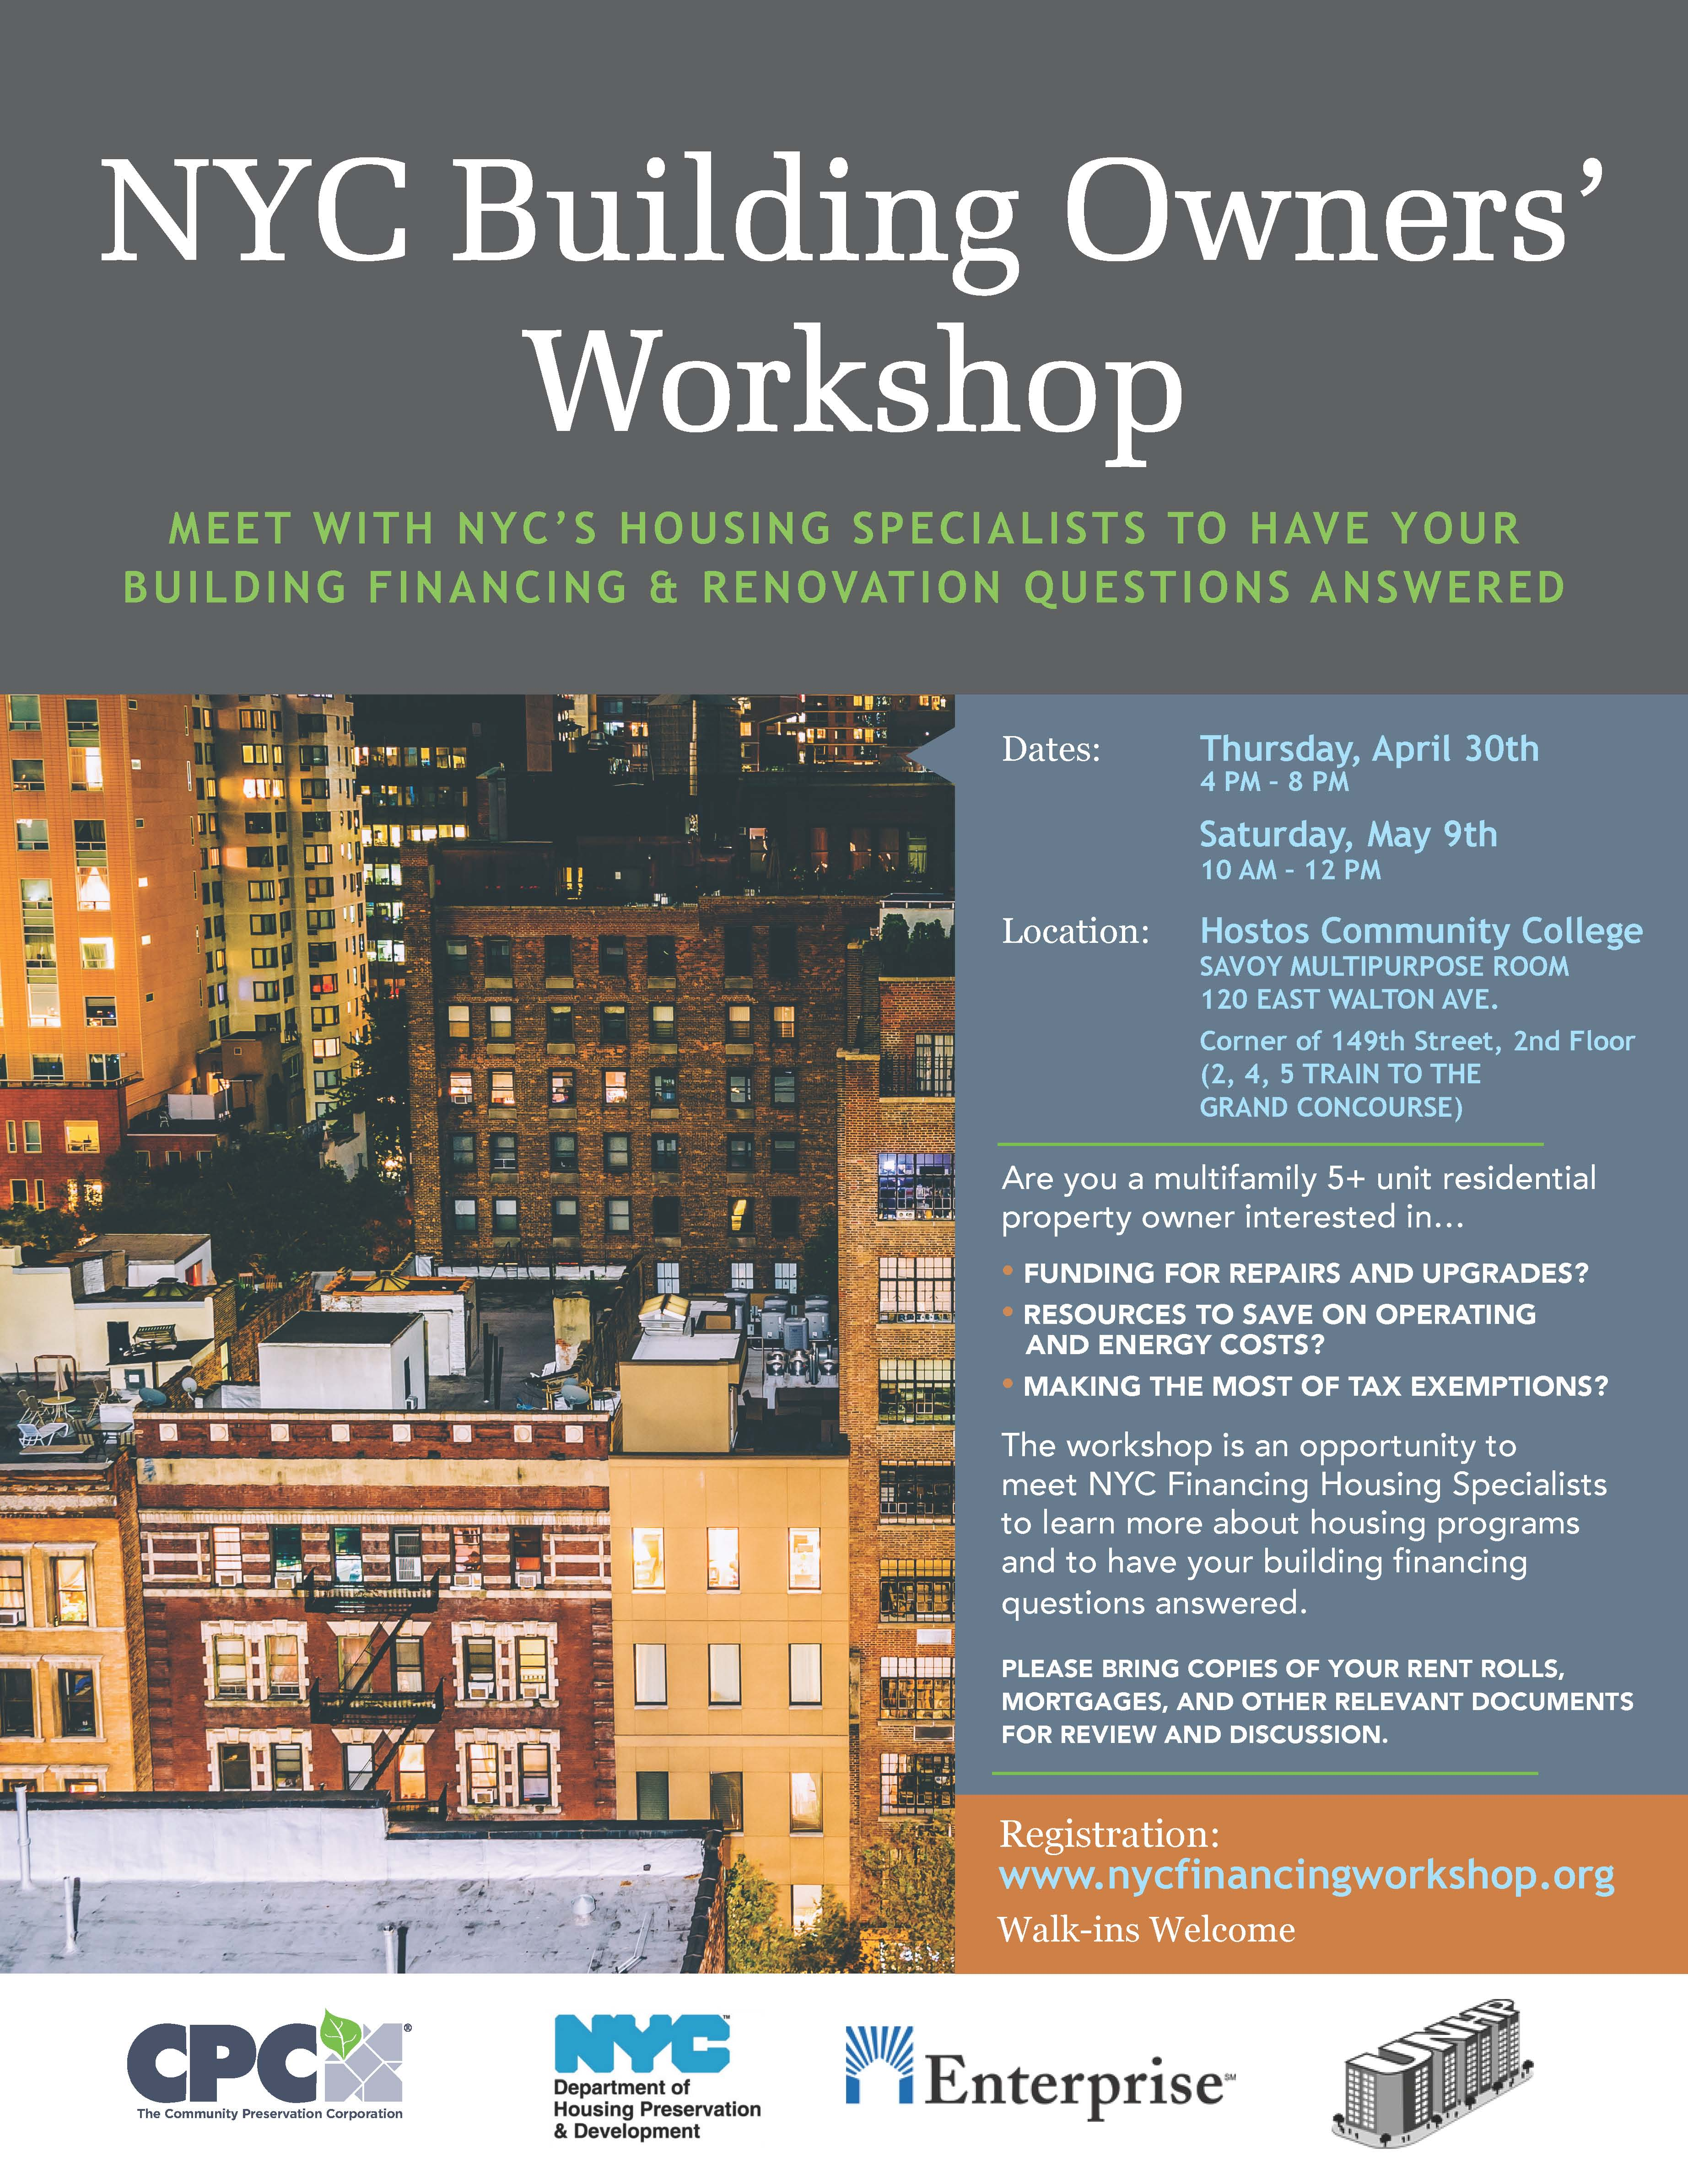 The NYC Building Owners Financing Workshop